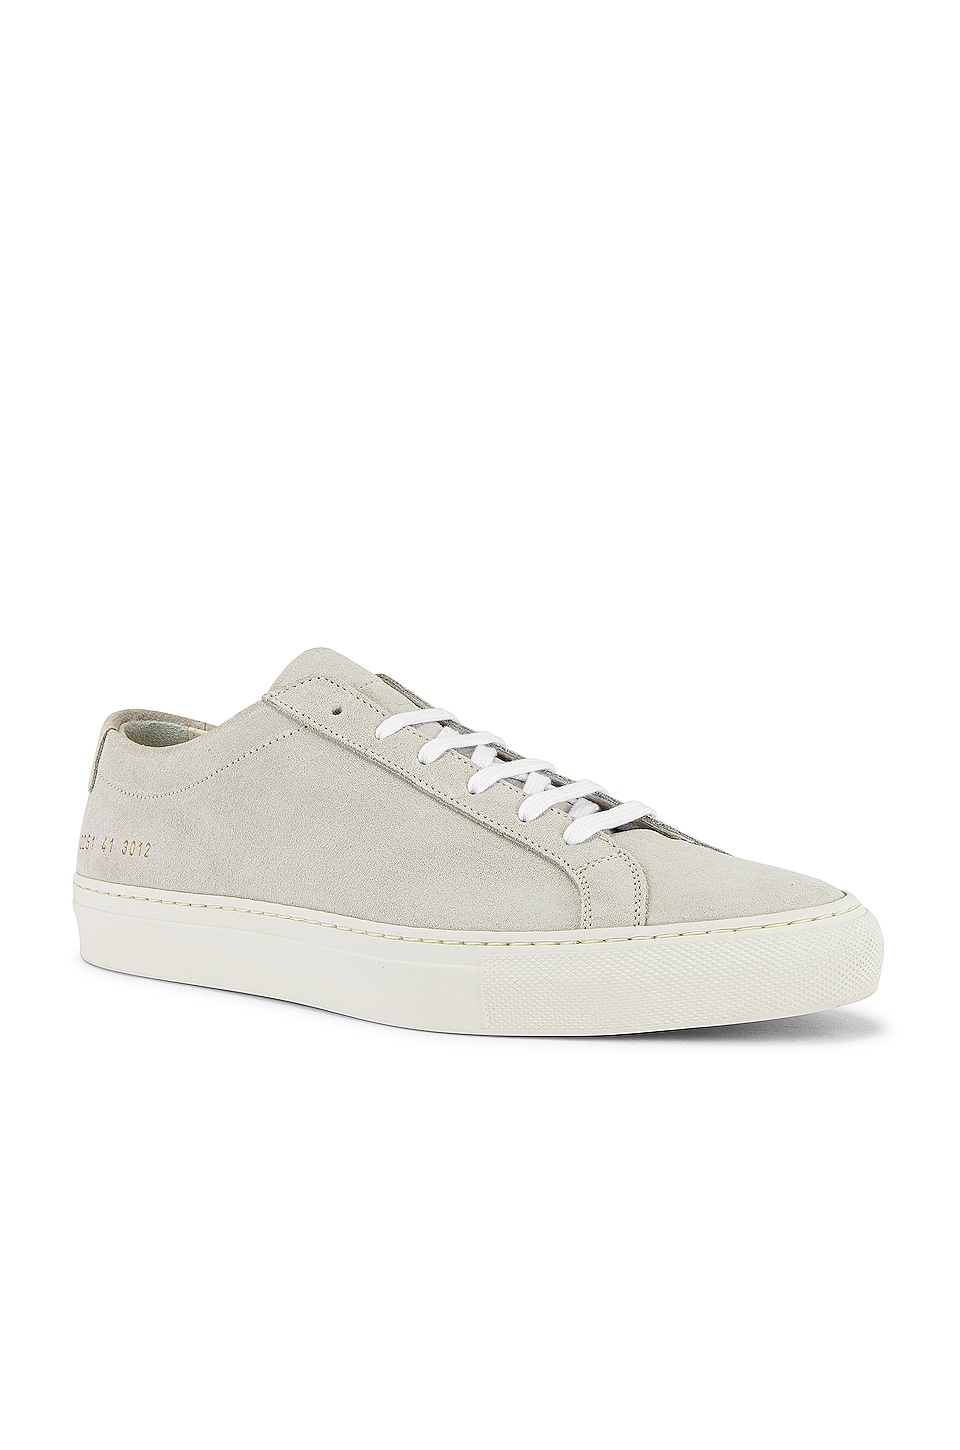 common project suede sneakers